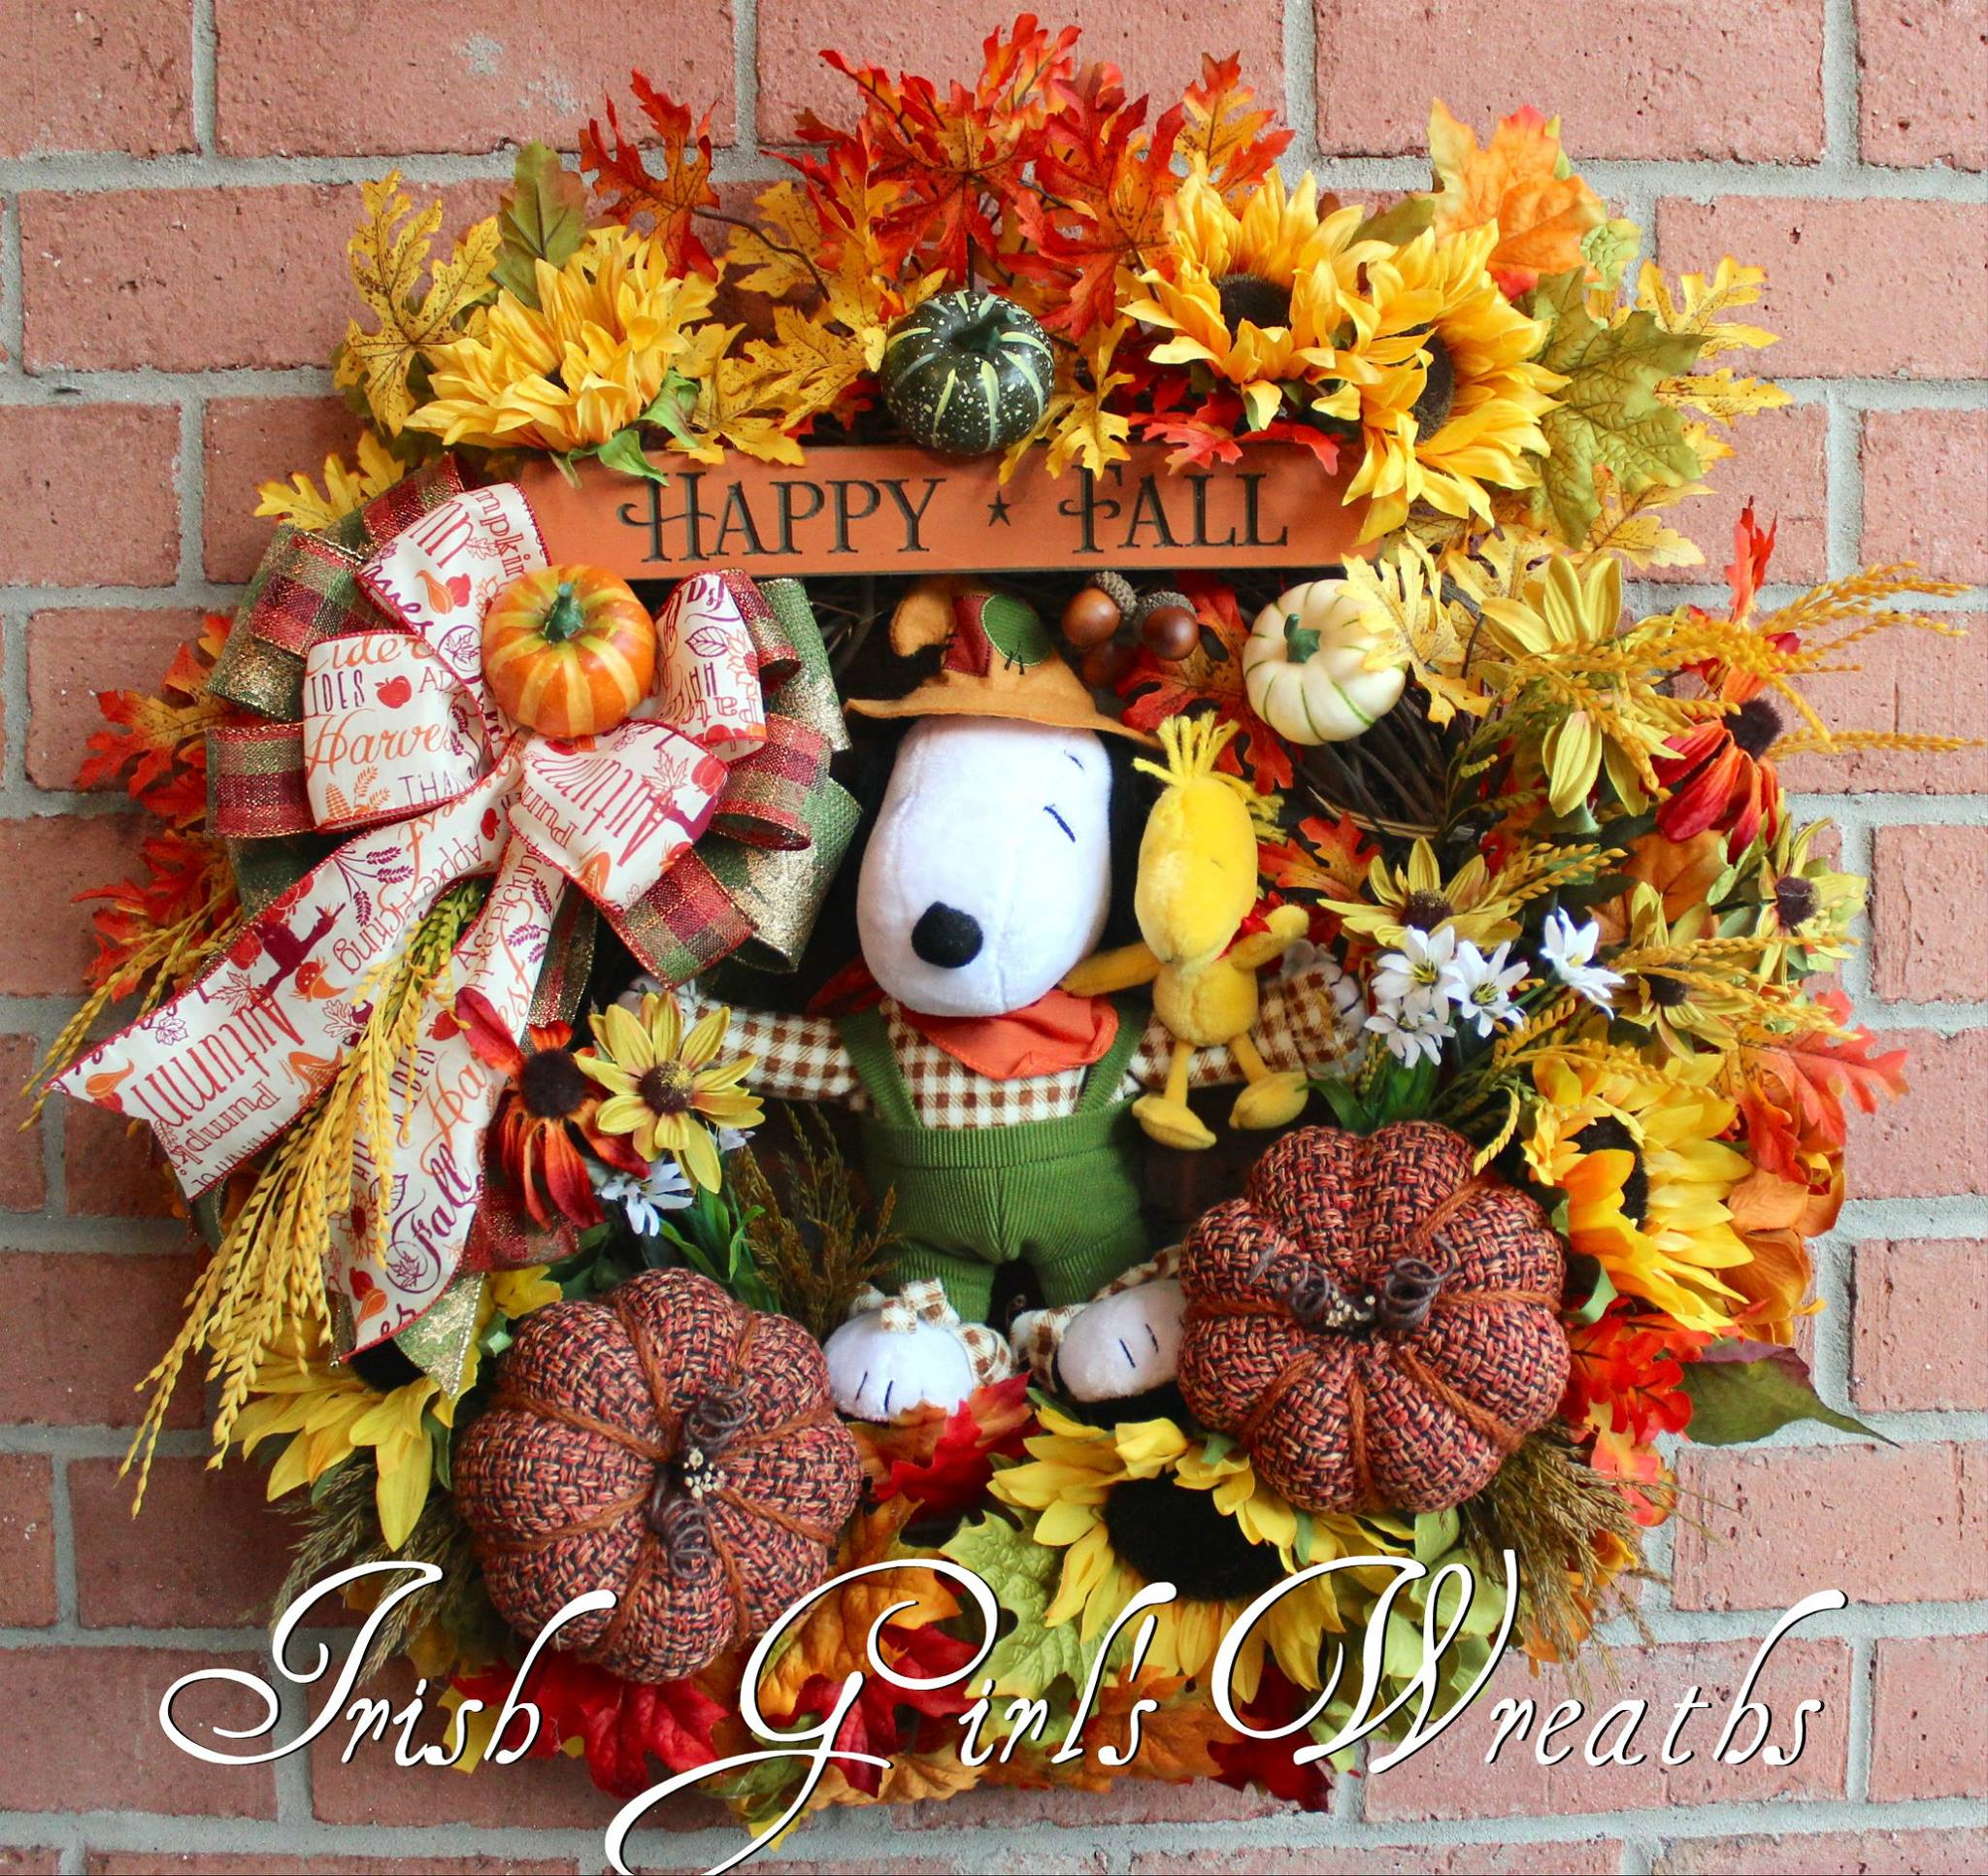 Scarecrow Snoopy and Woodstock Happy Fall Peanuts Wreath